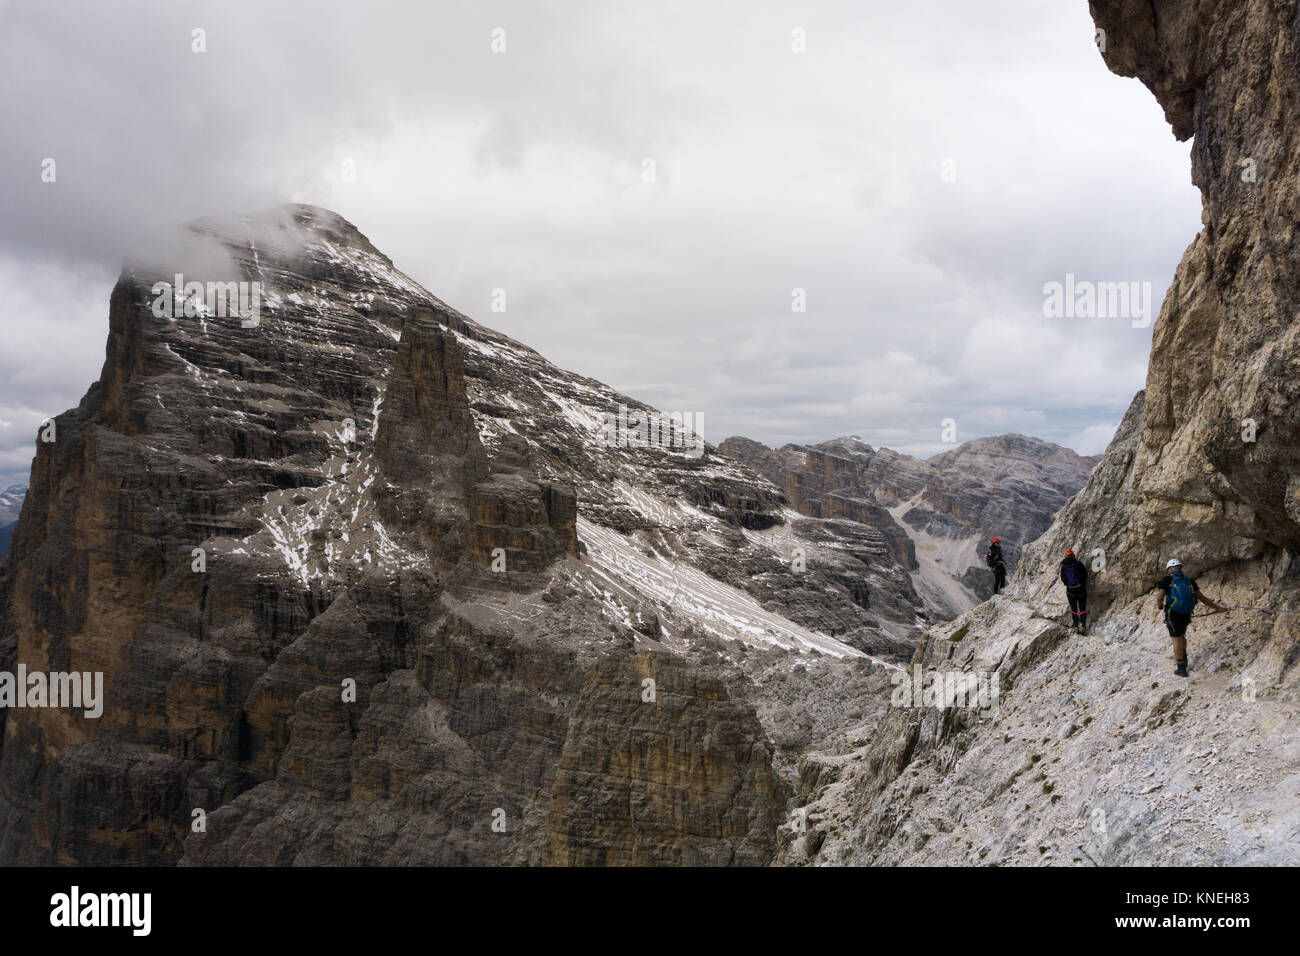 mountain climbers on an exposed Via Ferrata in the South Tyrol in the Italian Dolomites - Stock Image